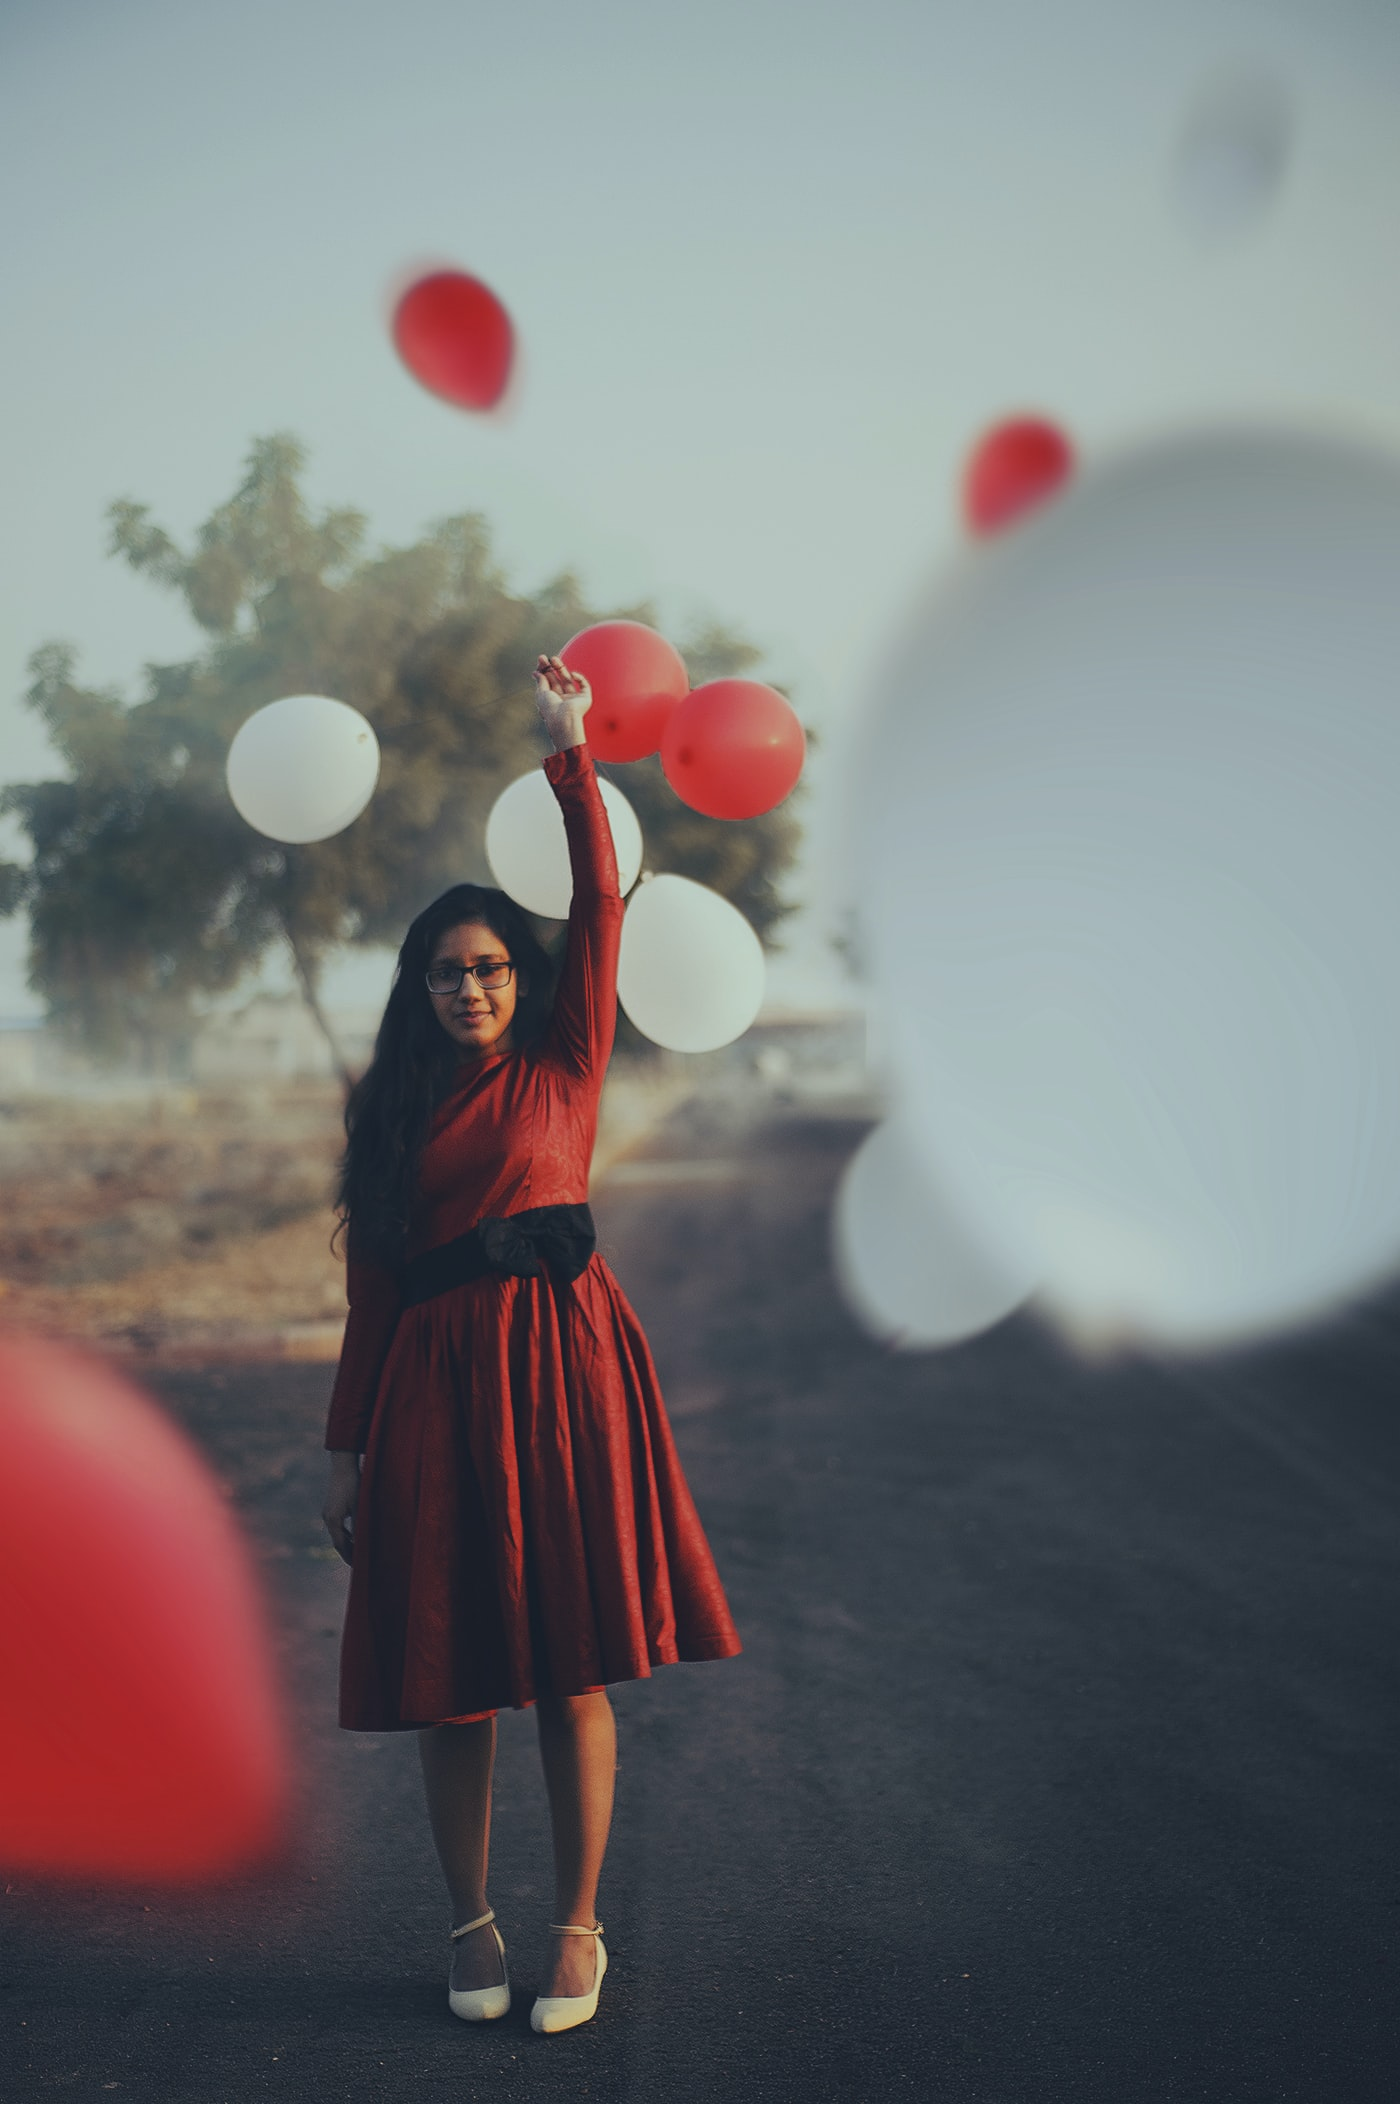 Young woman holds a balloon surrounded by red and white balloons